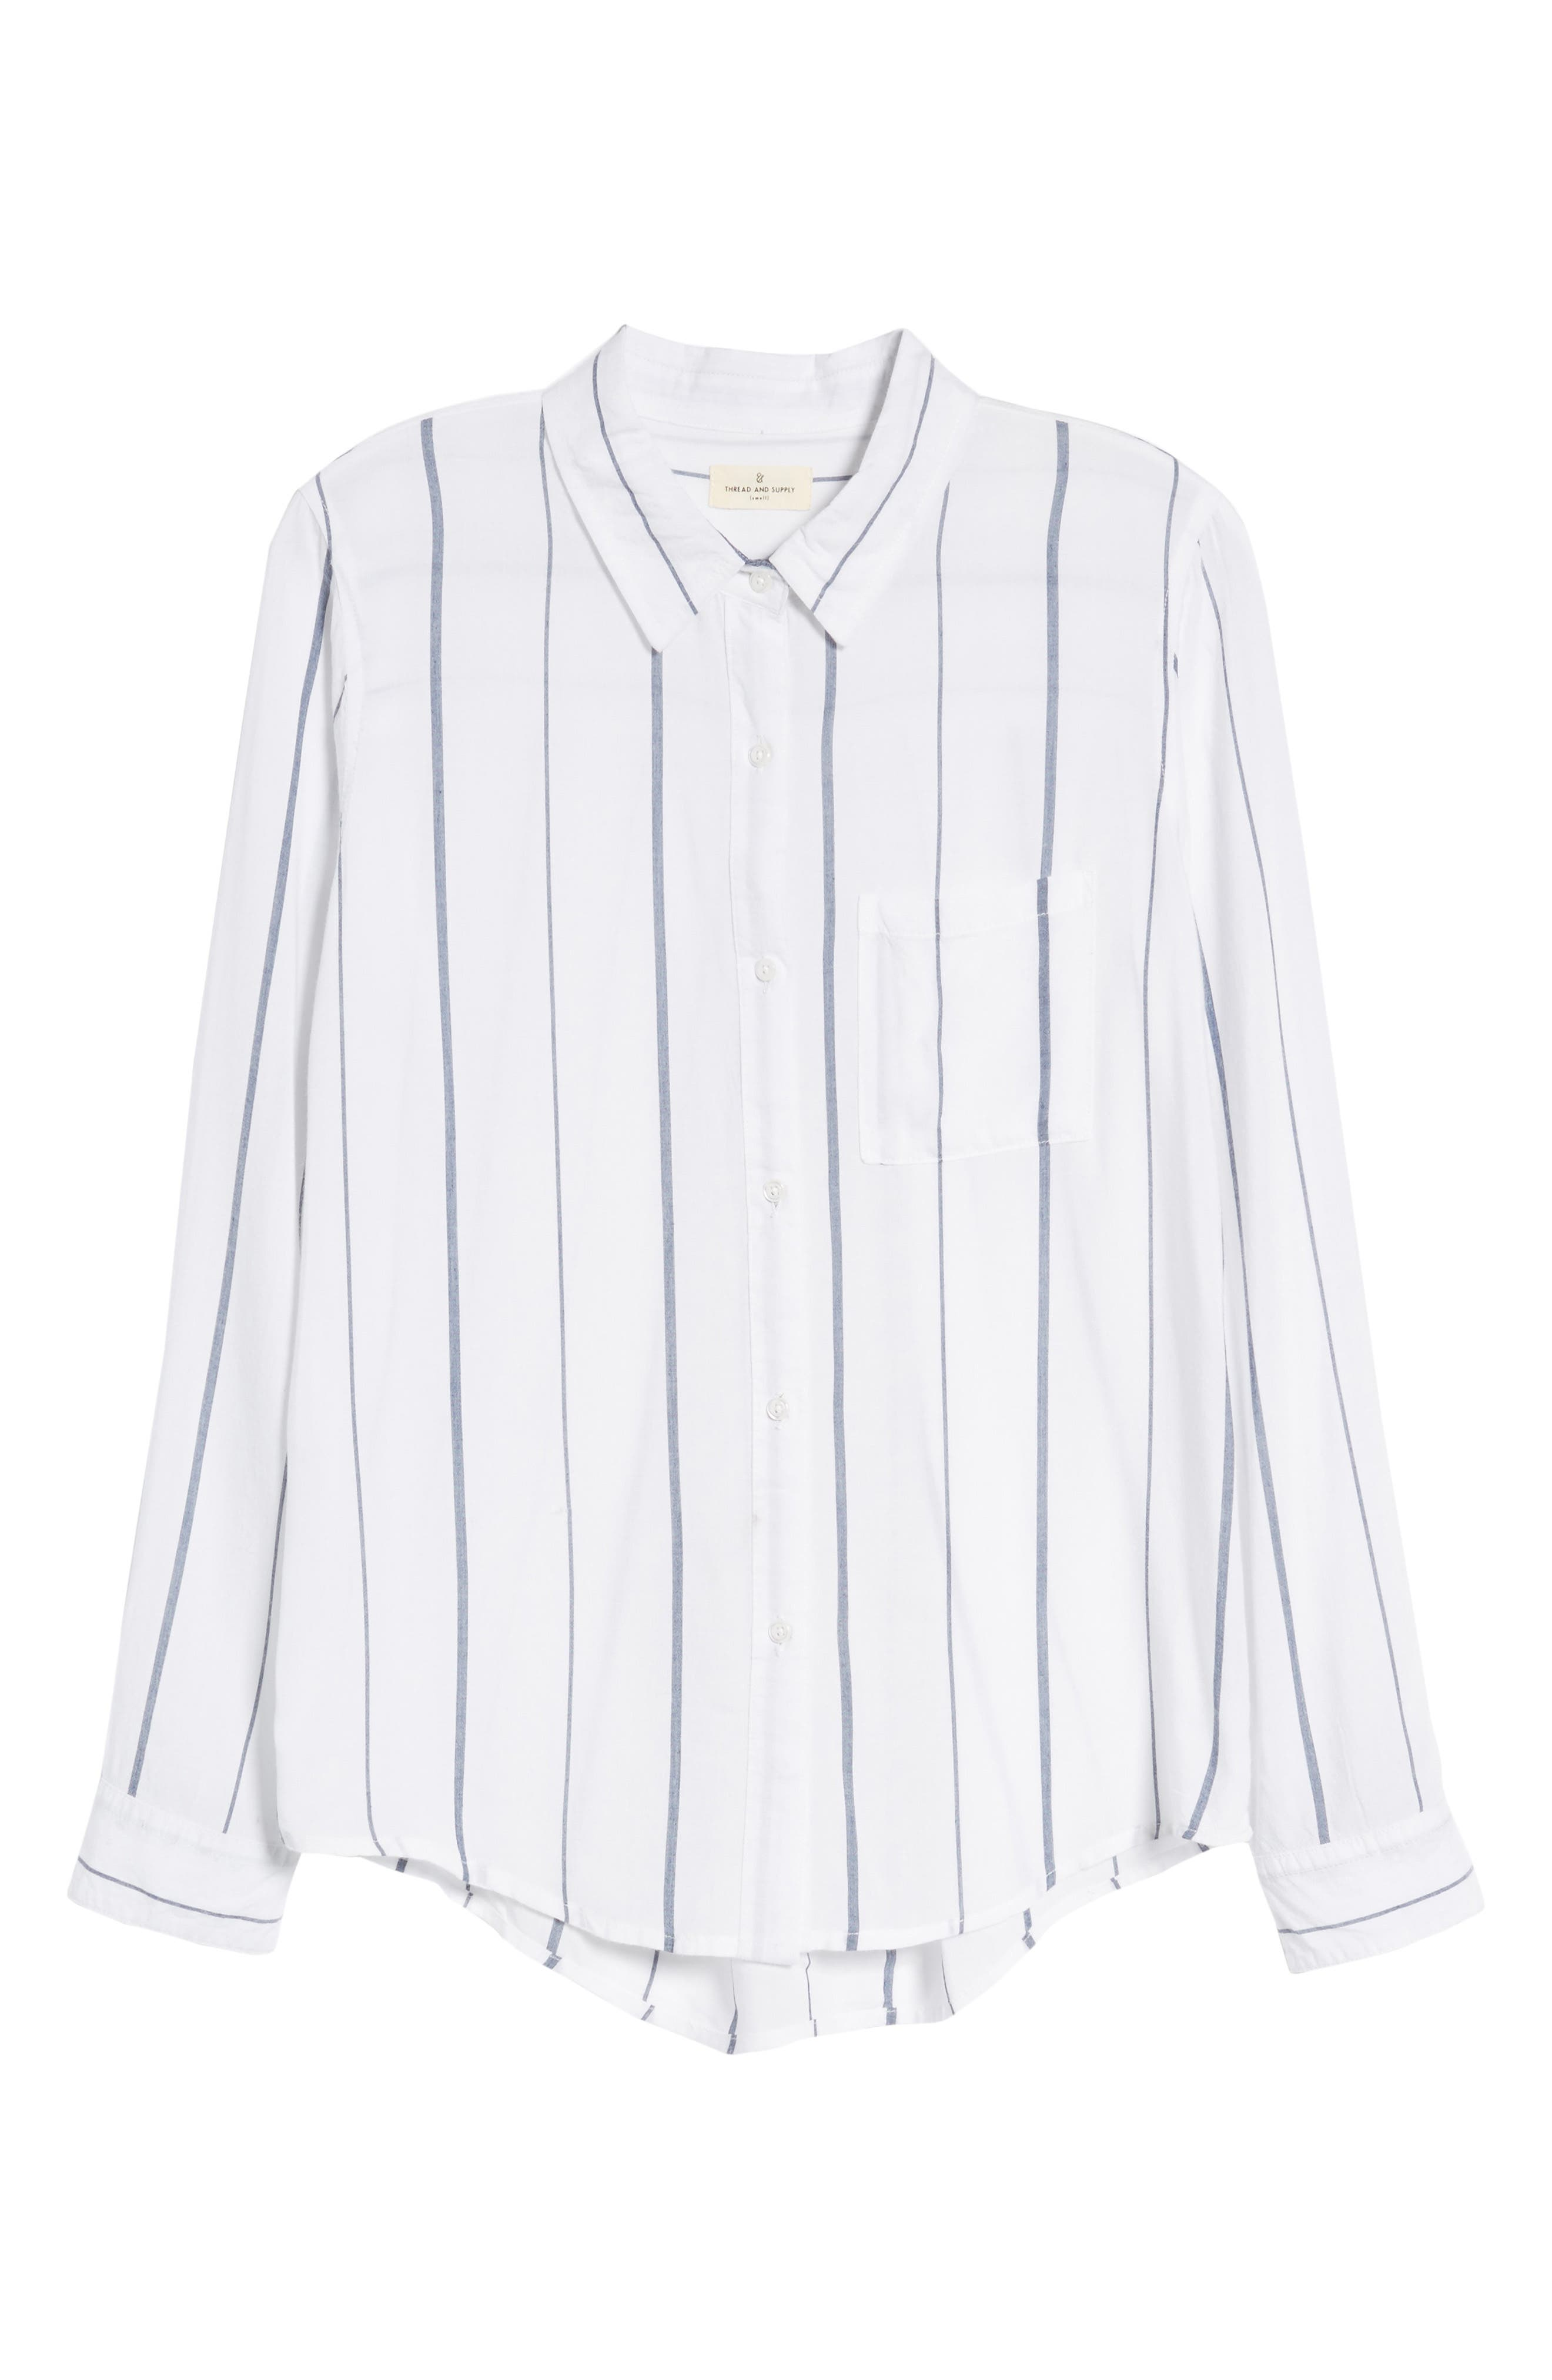 Canyons Stripe Shirt,                             Alternate thumbnail 6, color,                             White/ Navy Stripe